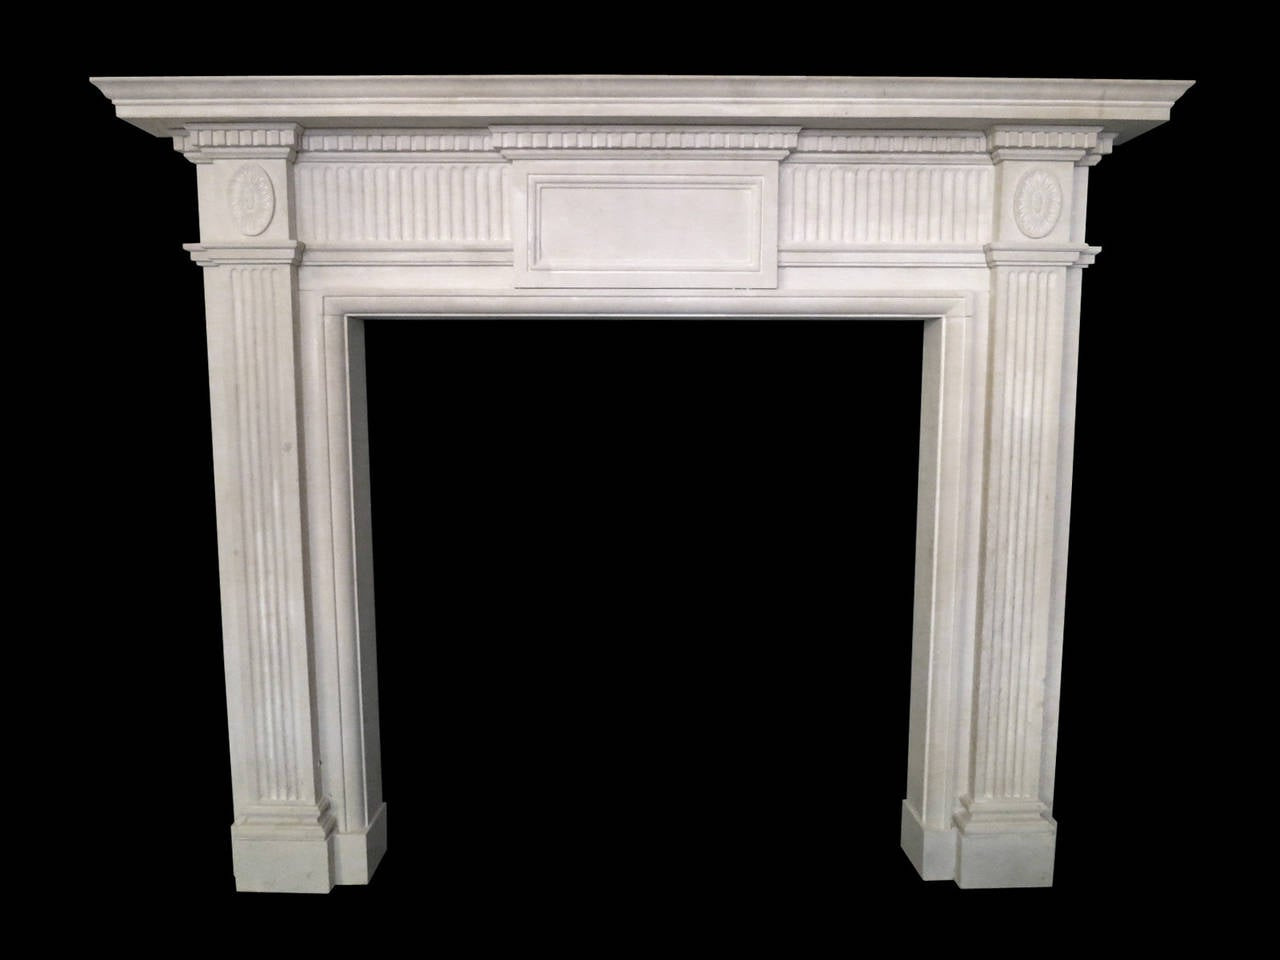 Best ideas about Fireplace Mantels For Sale . Save or Pin Georgian Style Portland Stone Fireplace Mantel For Sale at Now.